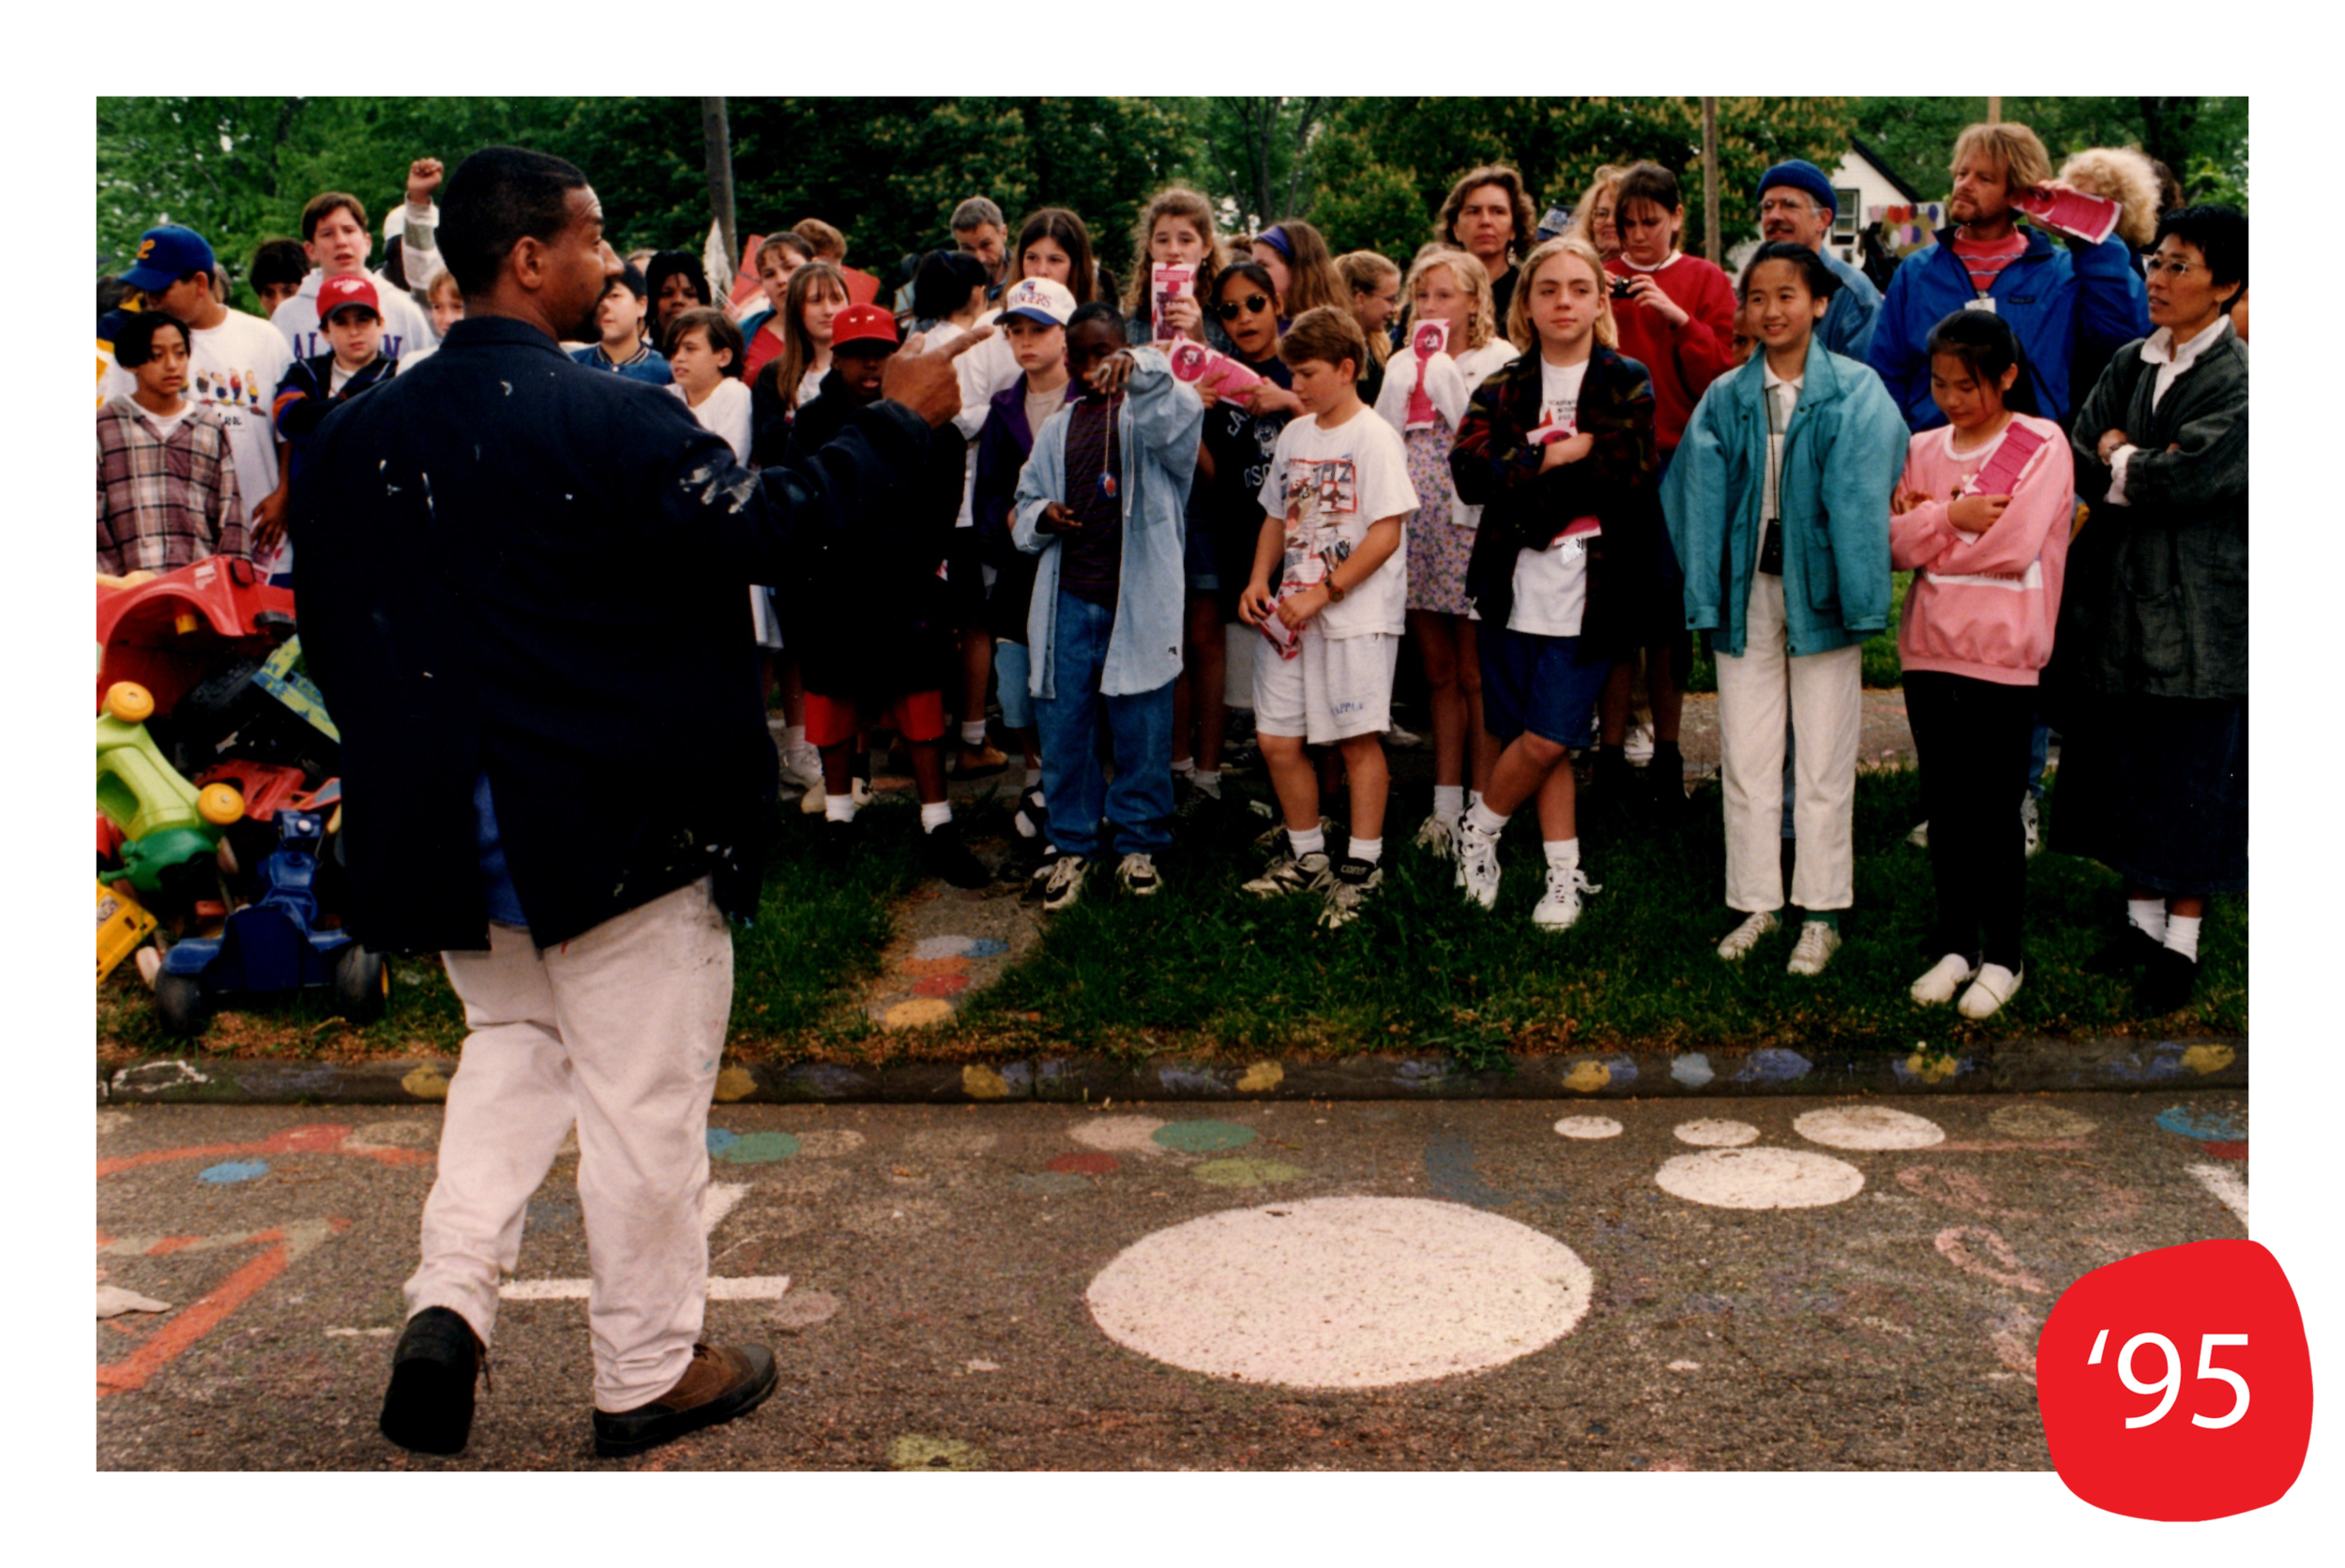 Tyree meets with students for a tour of the Heidelberg Project site